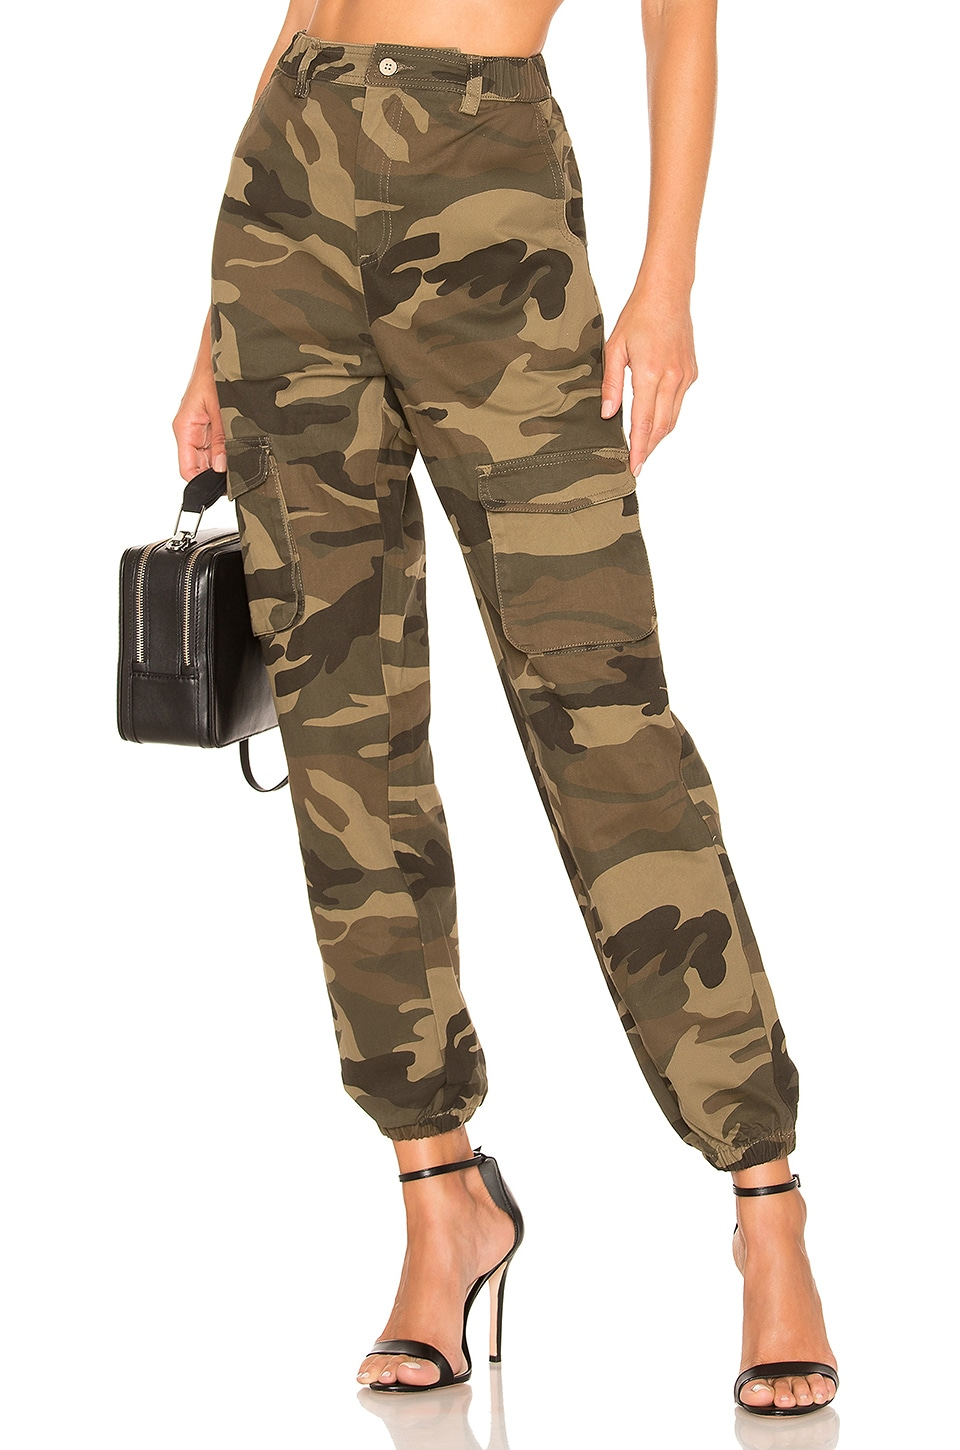 Lovers + Friends Scarlet Pants in Camo